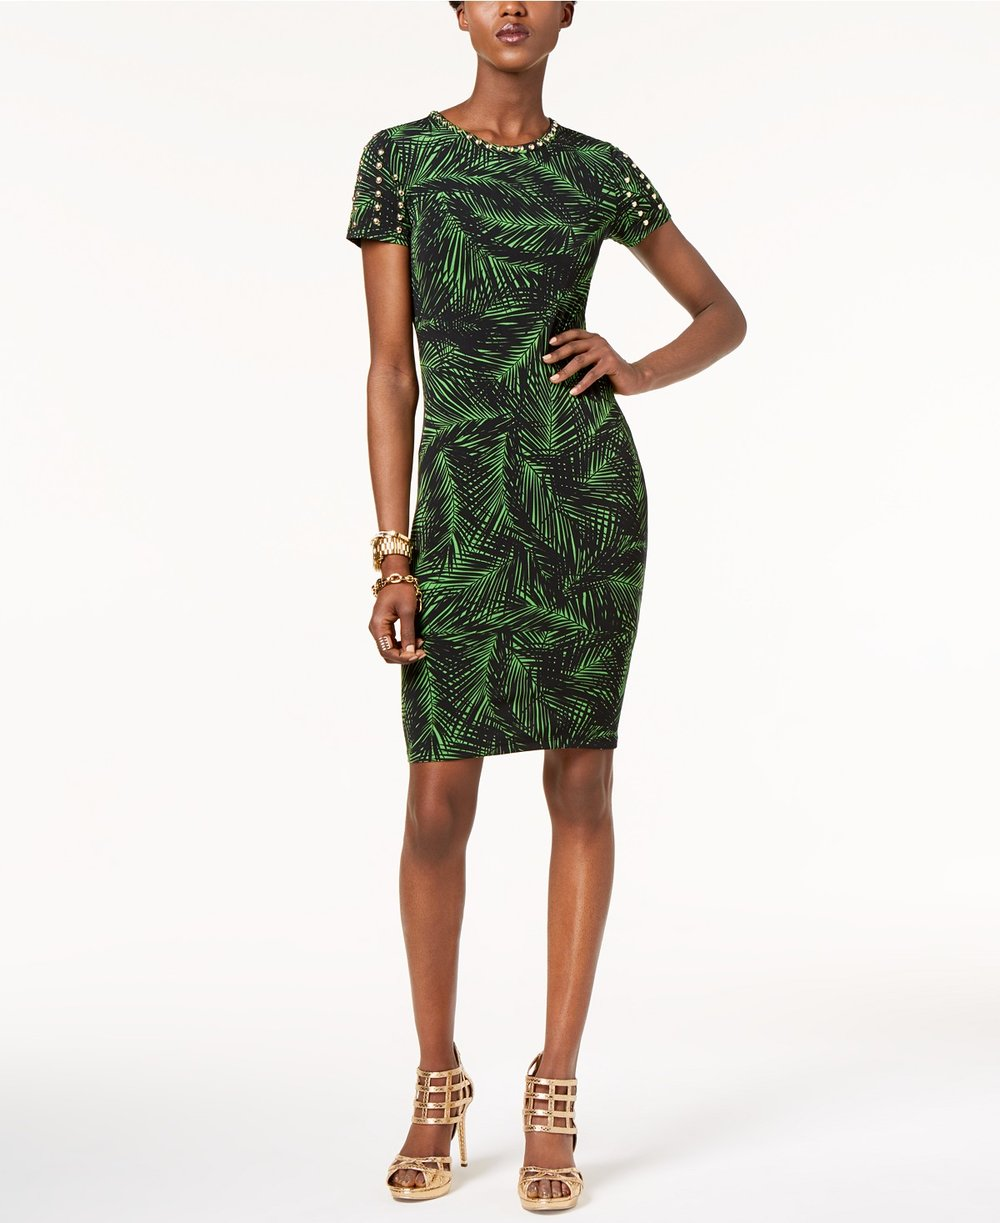 MICHAEL Michael Kors  Petite Palm-Print Studded Dress. Macy's. Was: $125. Now: $74.